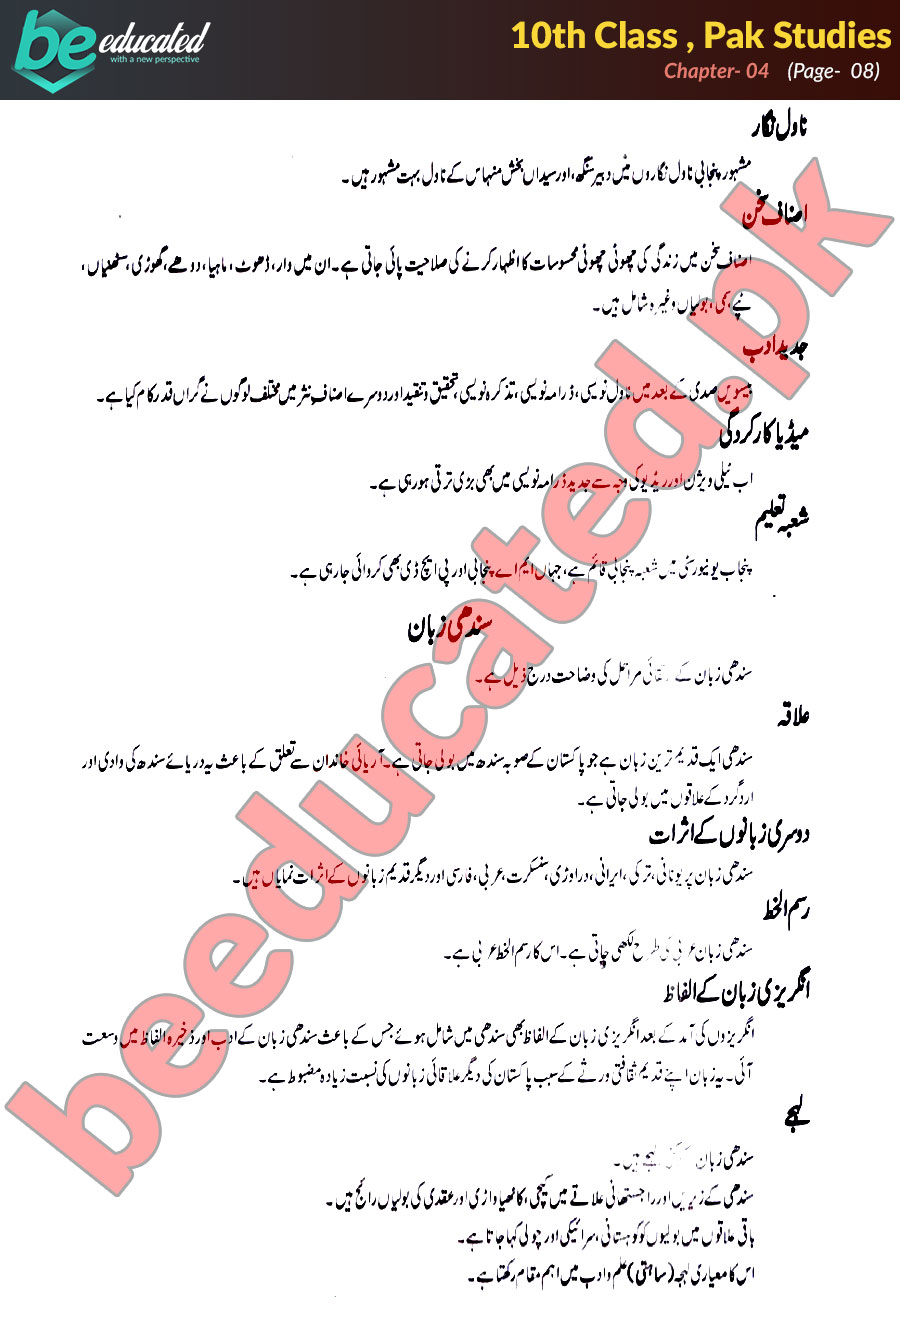 Chapter 4 Pak Studies 10th Class Notes - Matric Part 2 Notes